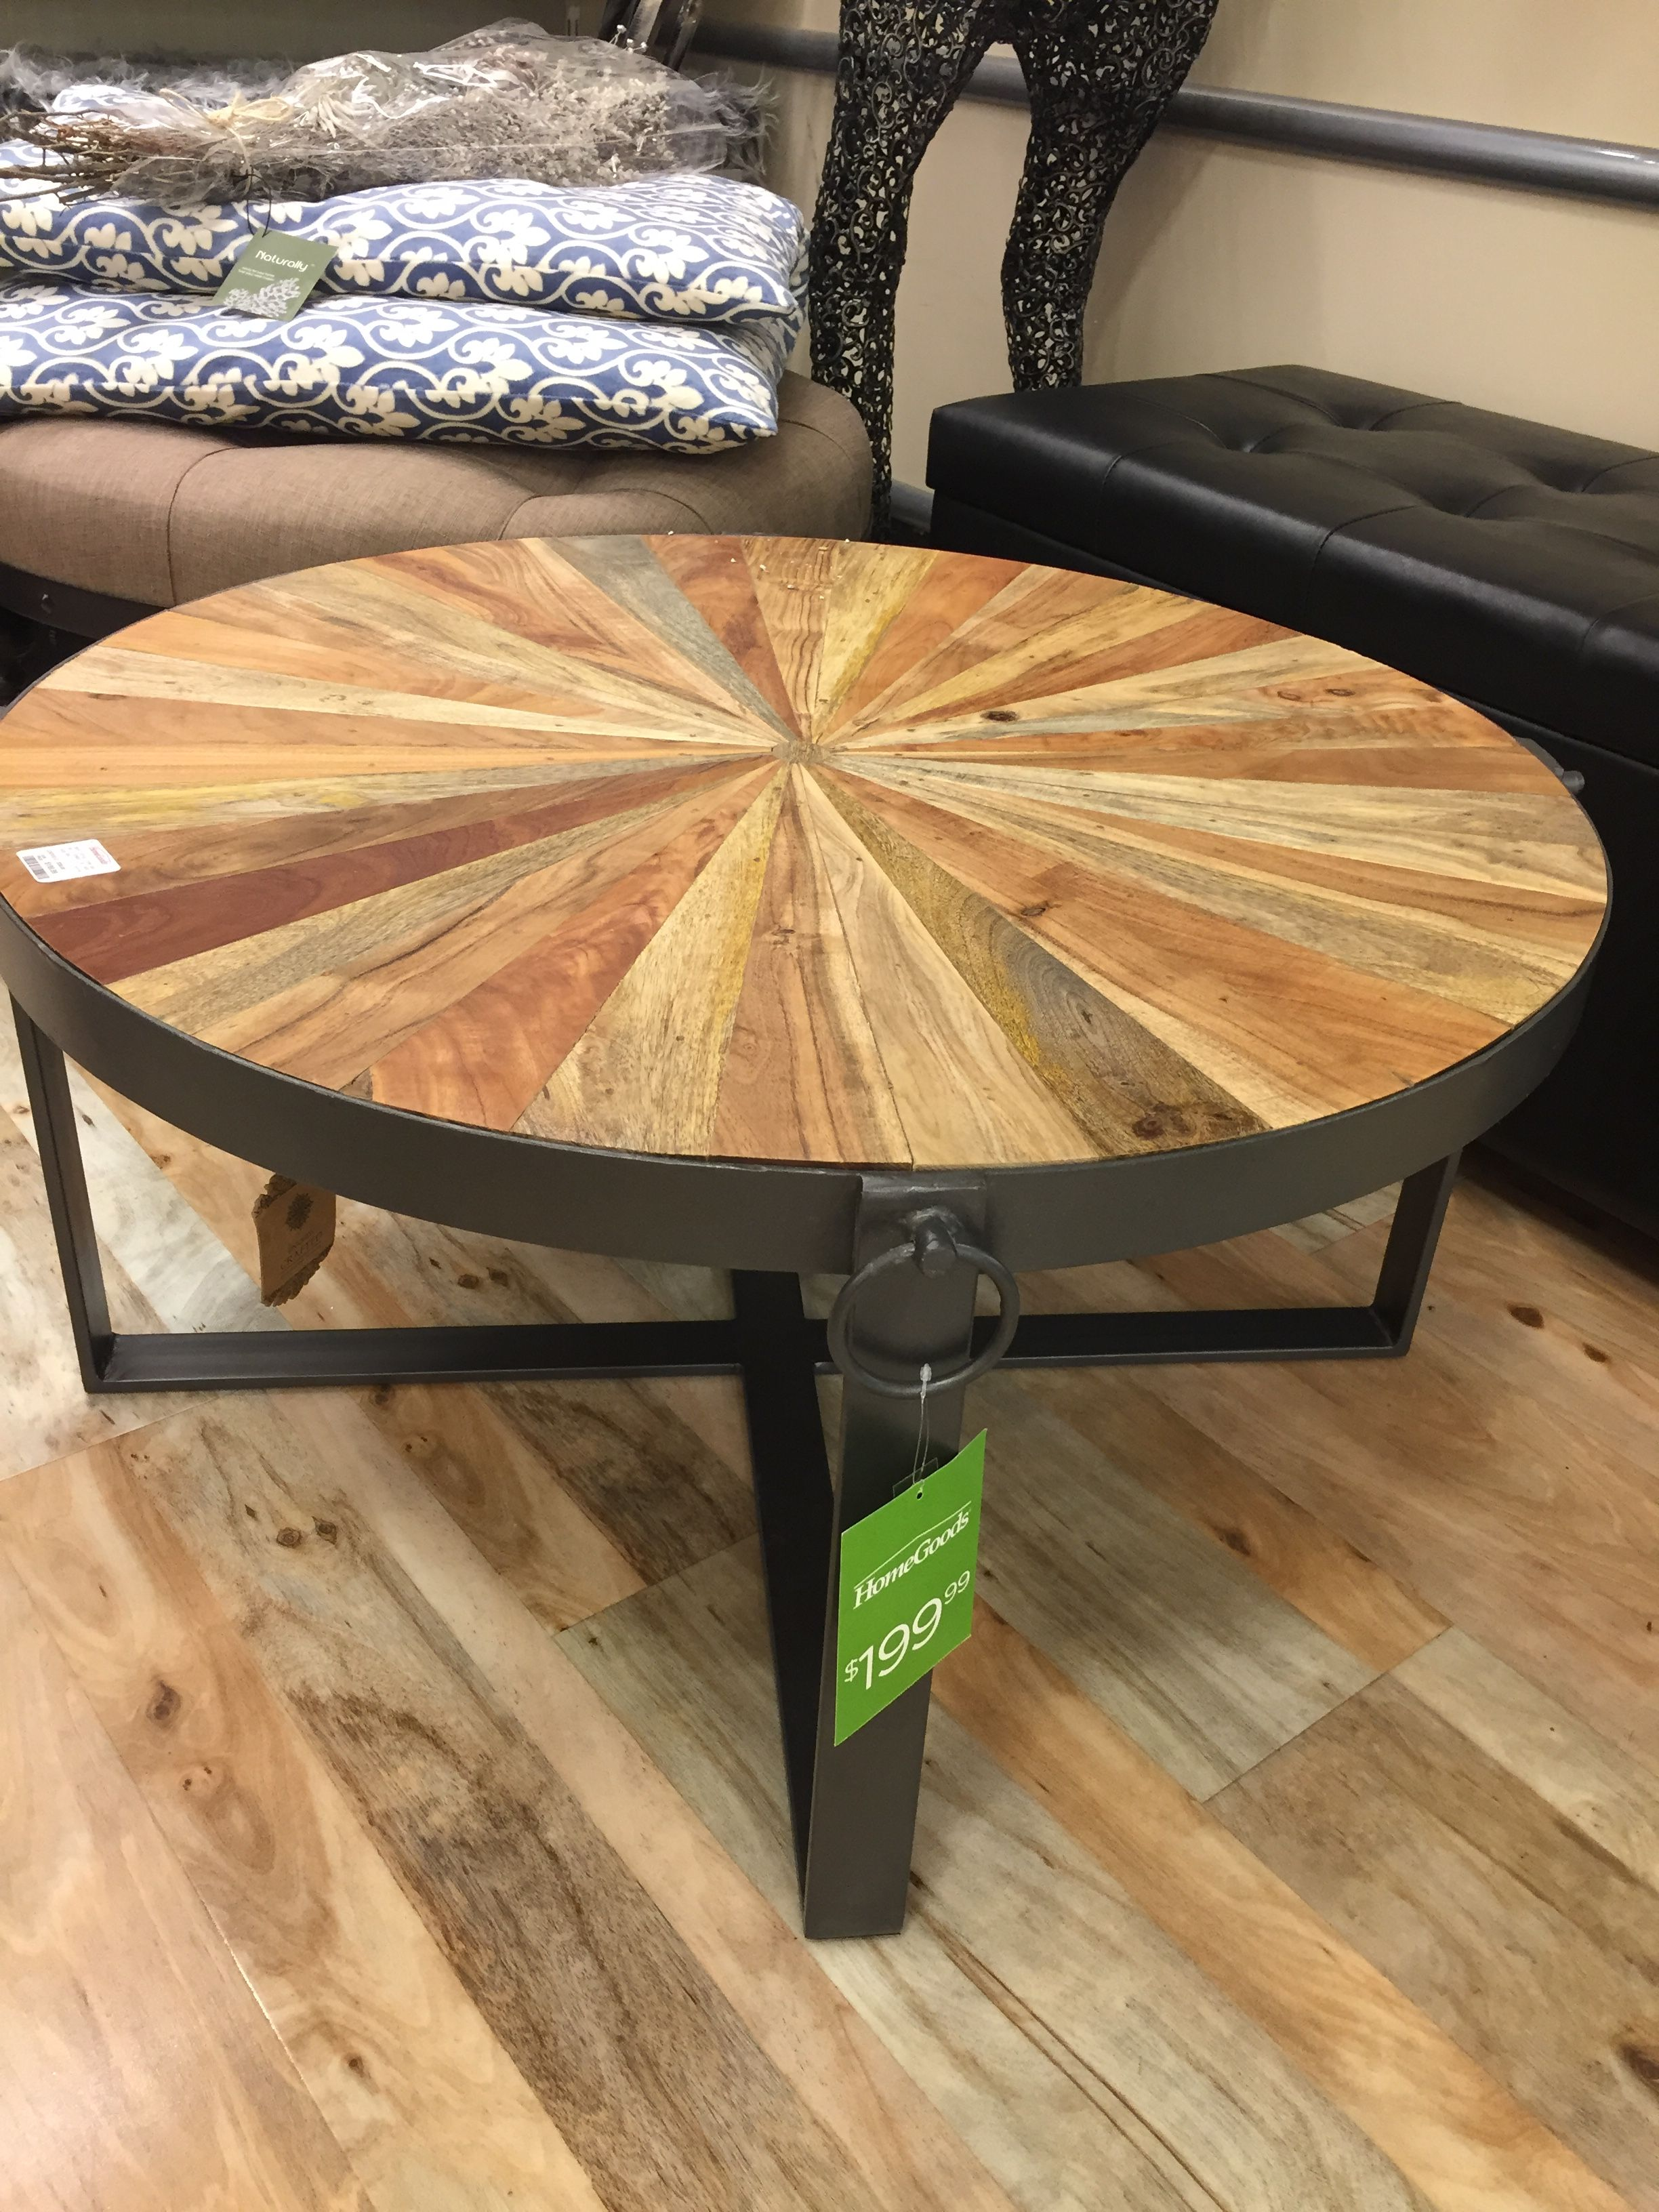 Coffee table dream living rooms home decor home goods